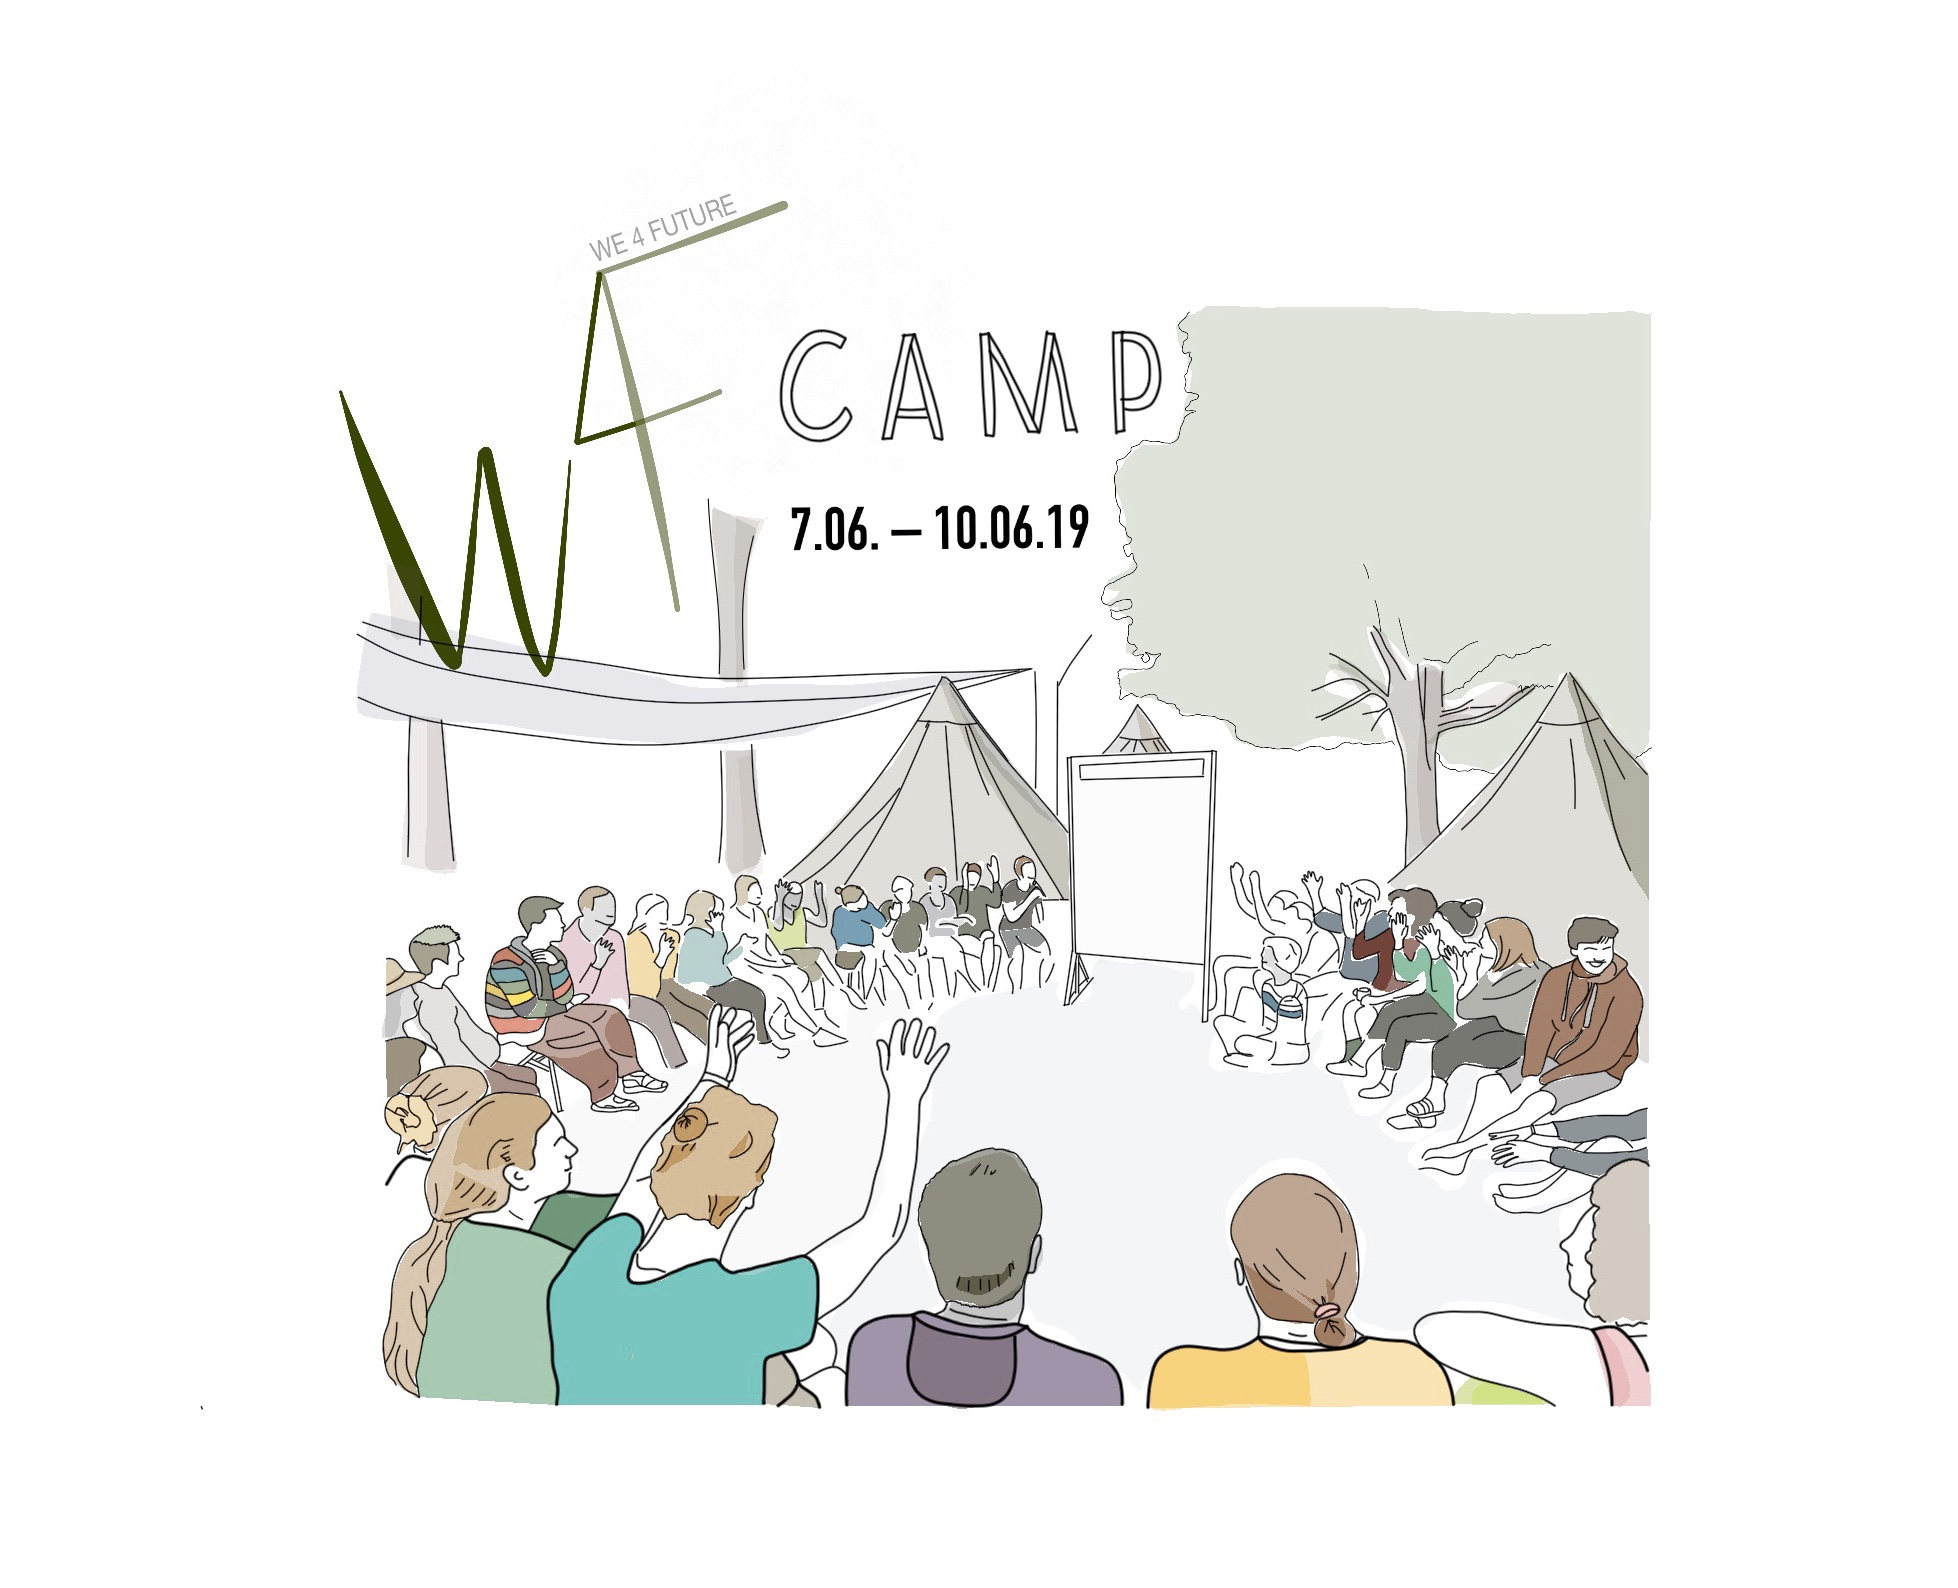 Erstes We4Future-Camp vom 07.-10.06.2019